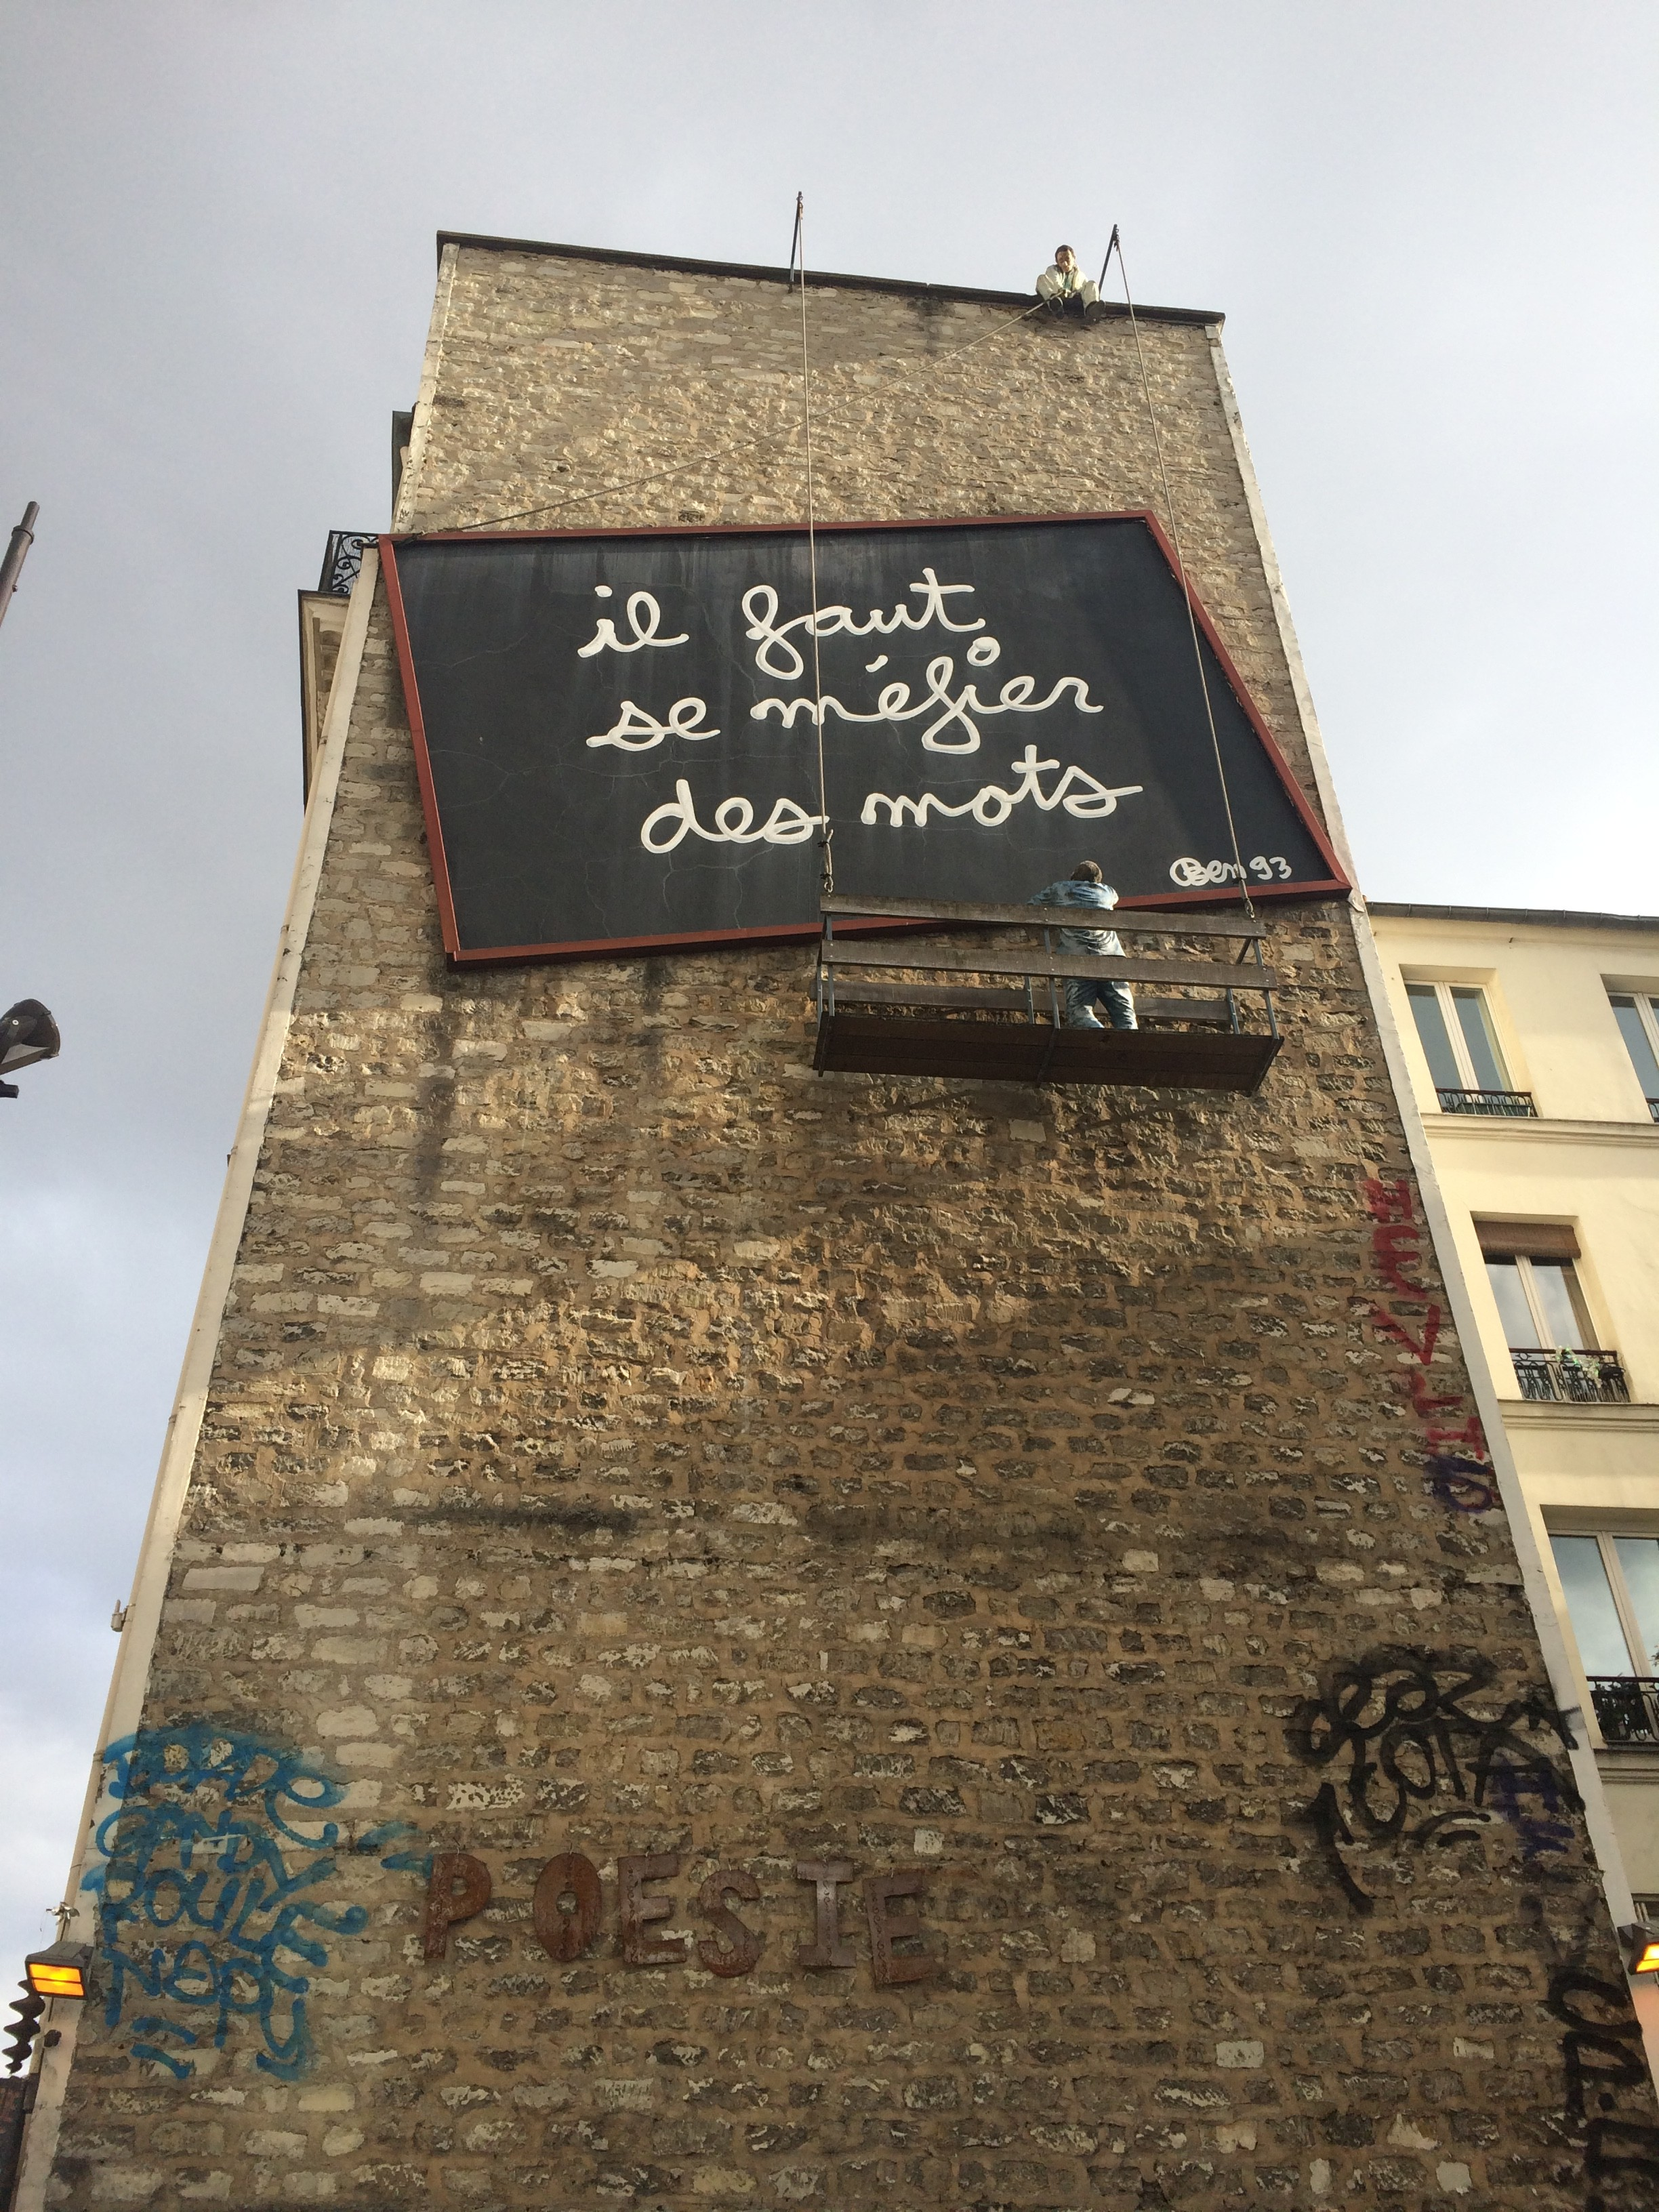 Ben 93 - Beware of Words in Belleville, Paris